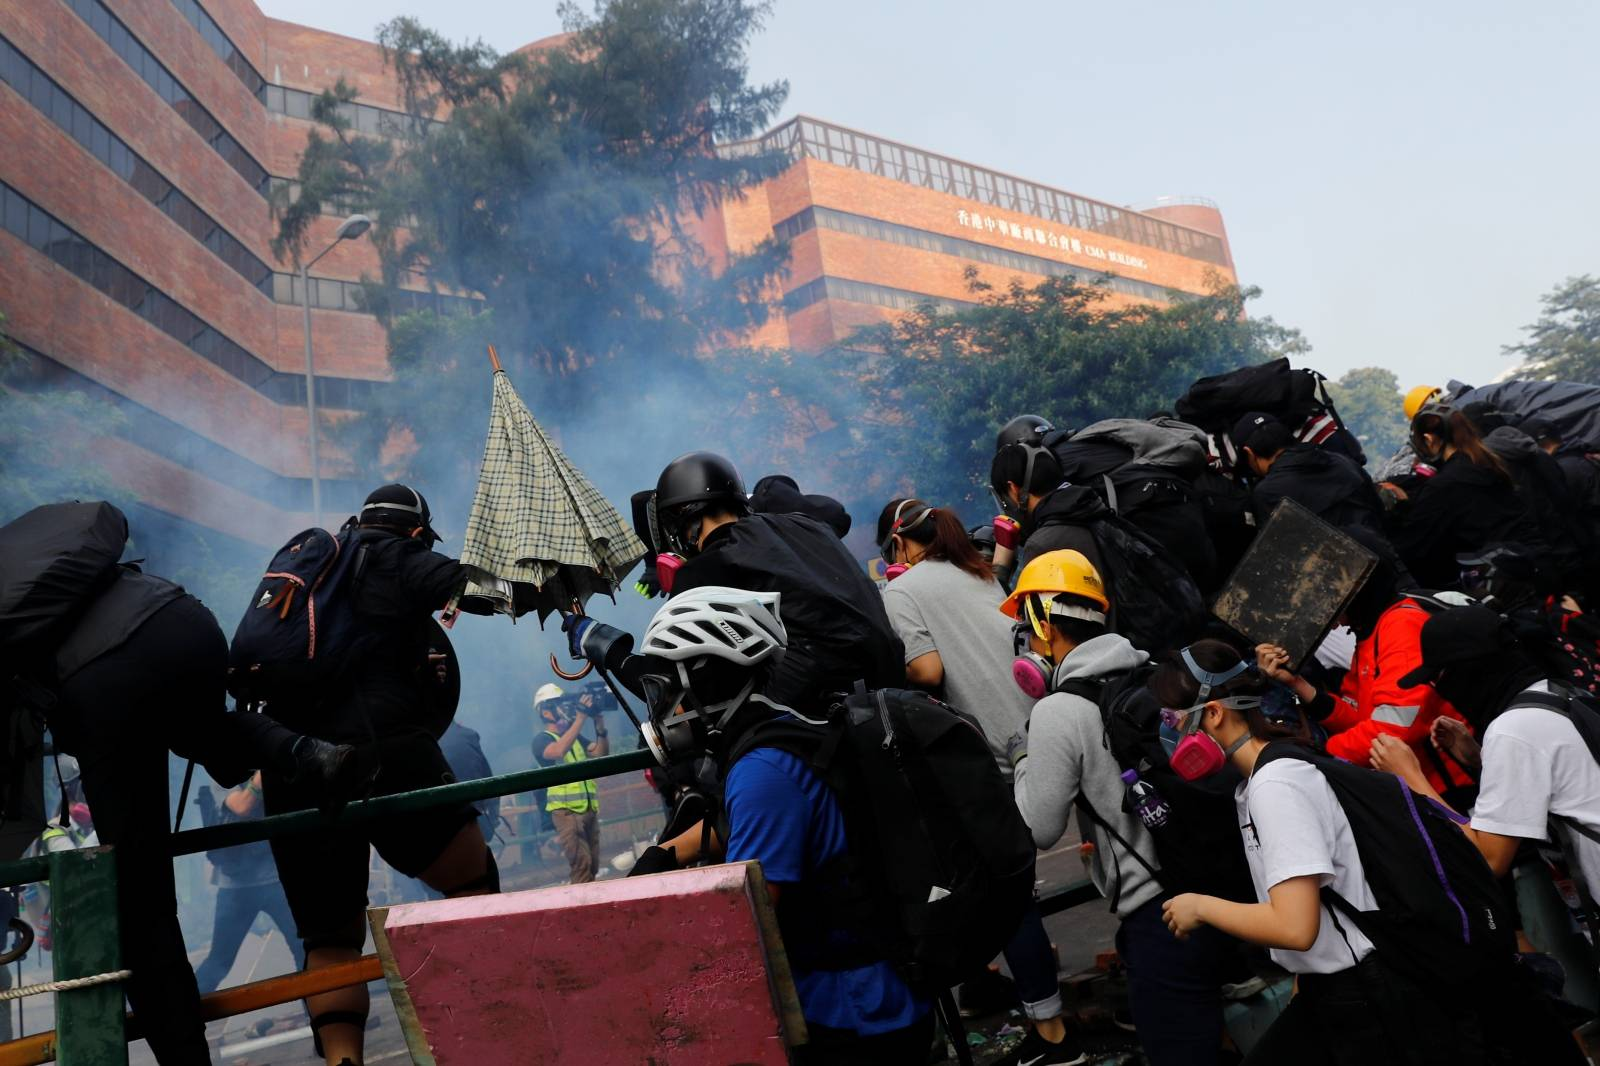 Protesters are detained by riot police while attempting to leave the campus of Hong Kong Polytechnic University (PolyU) during clashes with police in Hong Kong